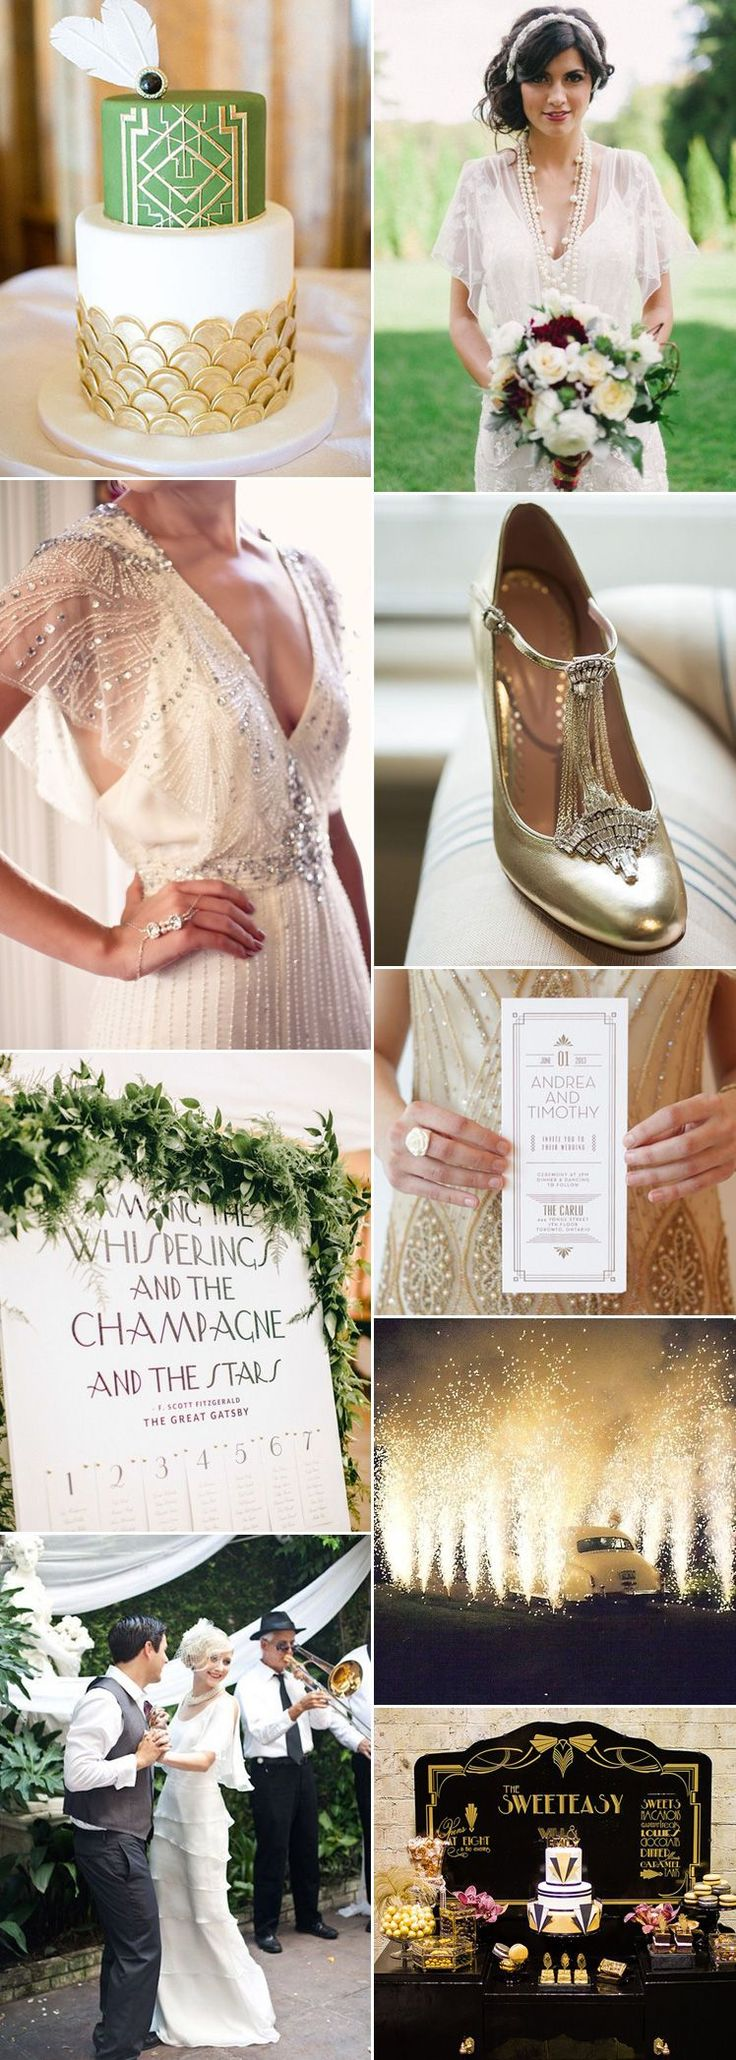 Gatsby wedding glamour on GS Inspiration - Glitzy Secrets                                                                                                                                                                                 More